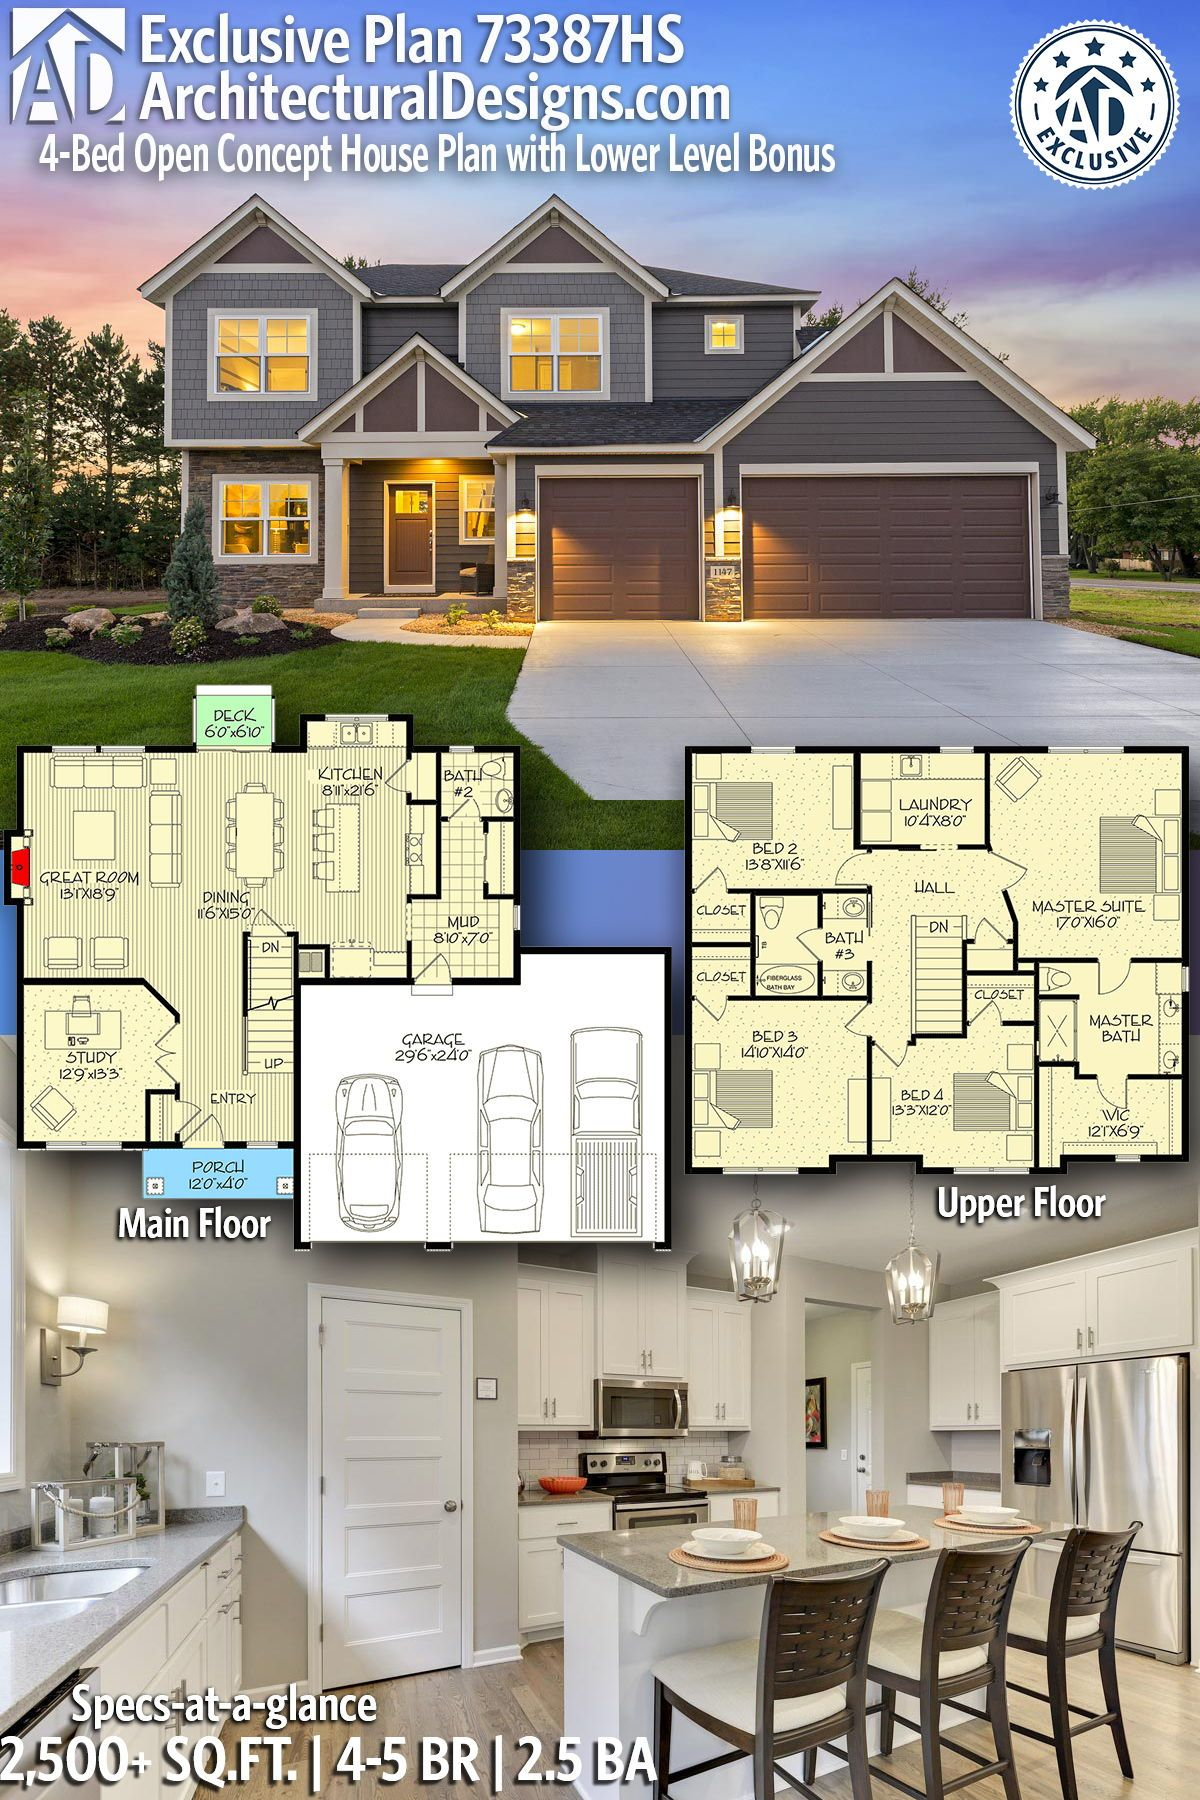 Architectural Designs Exclusive Home Plan 73387HS gives